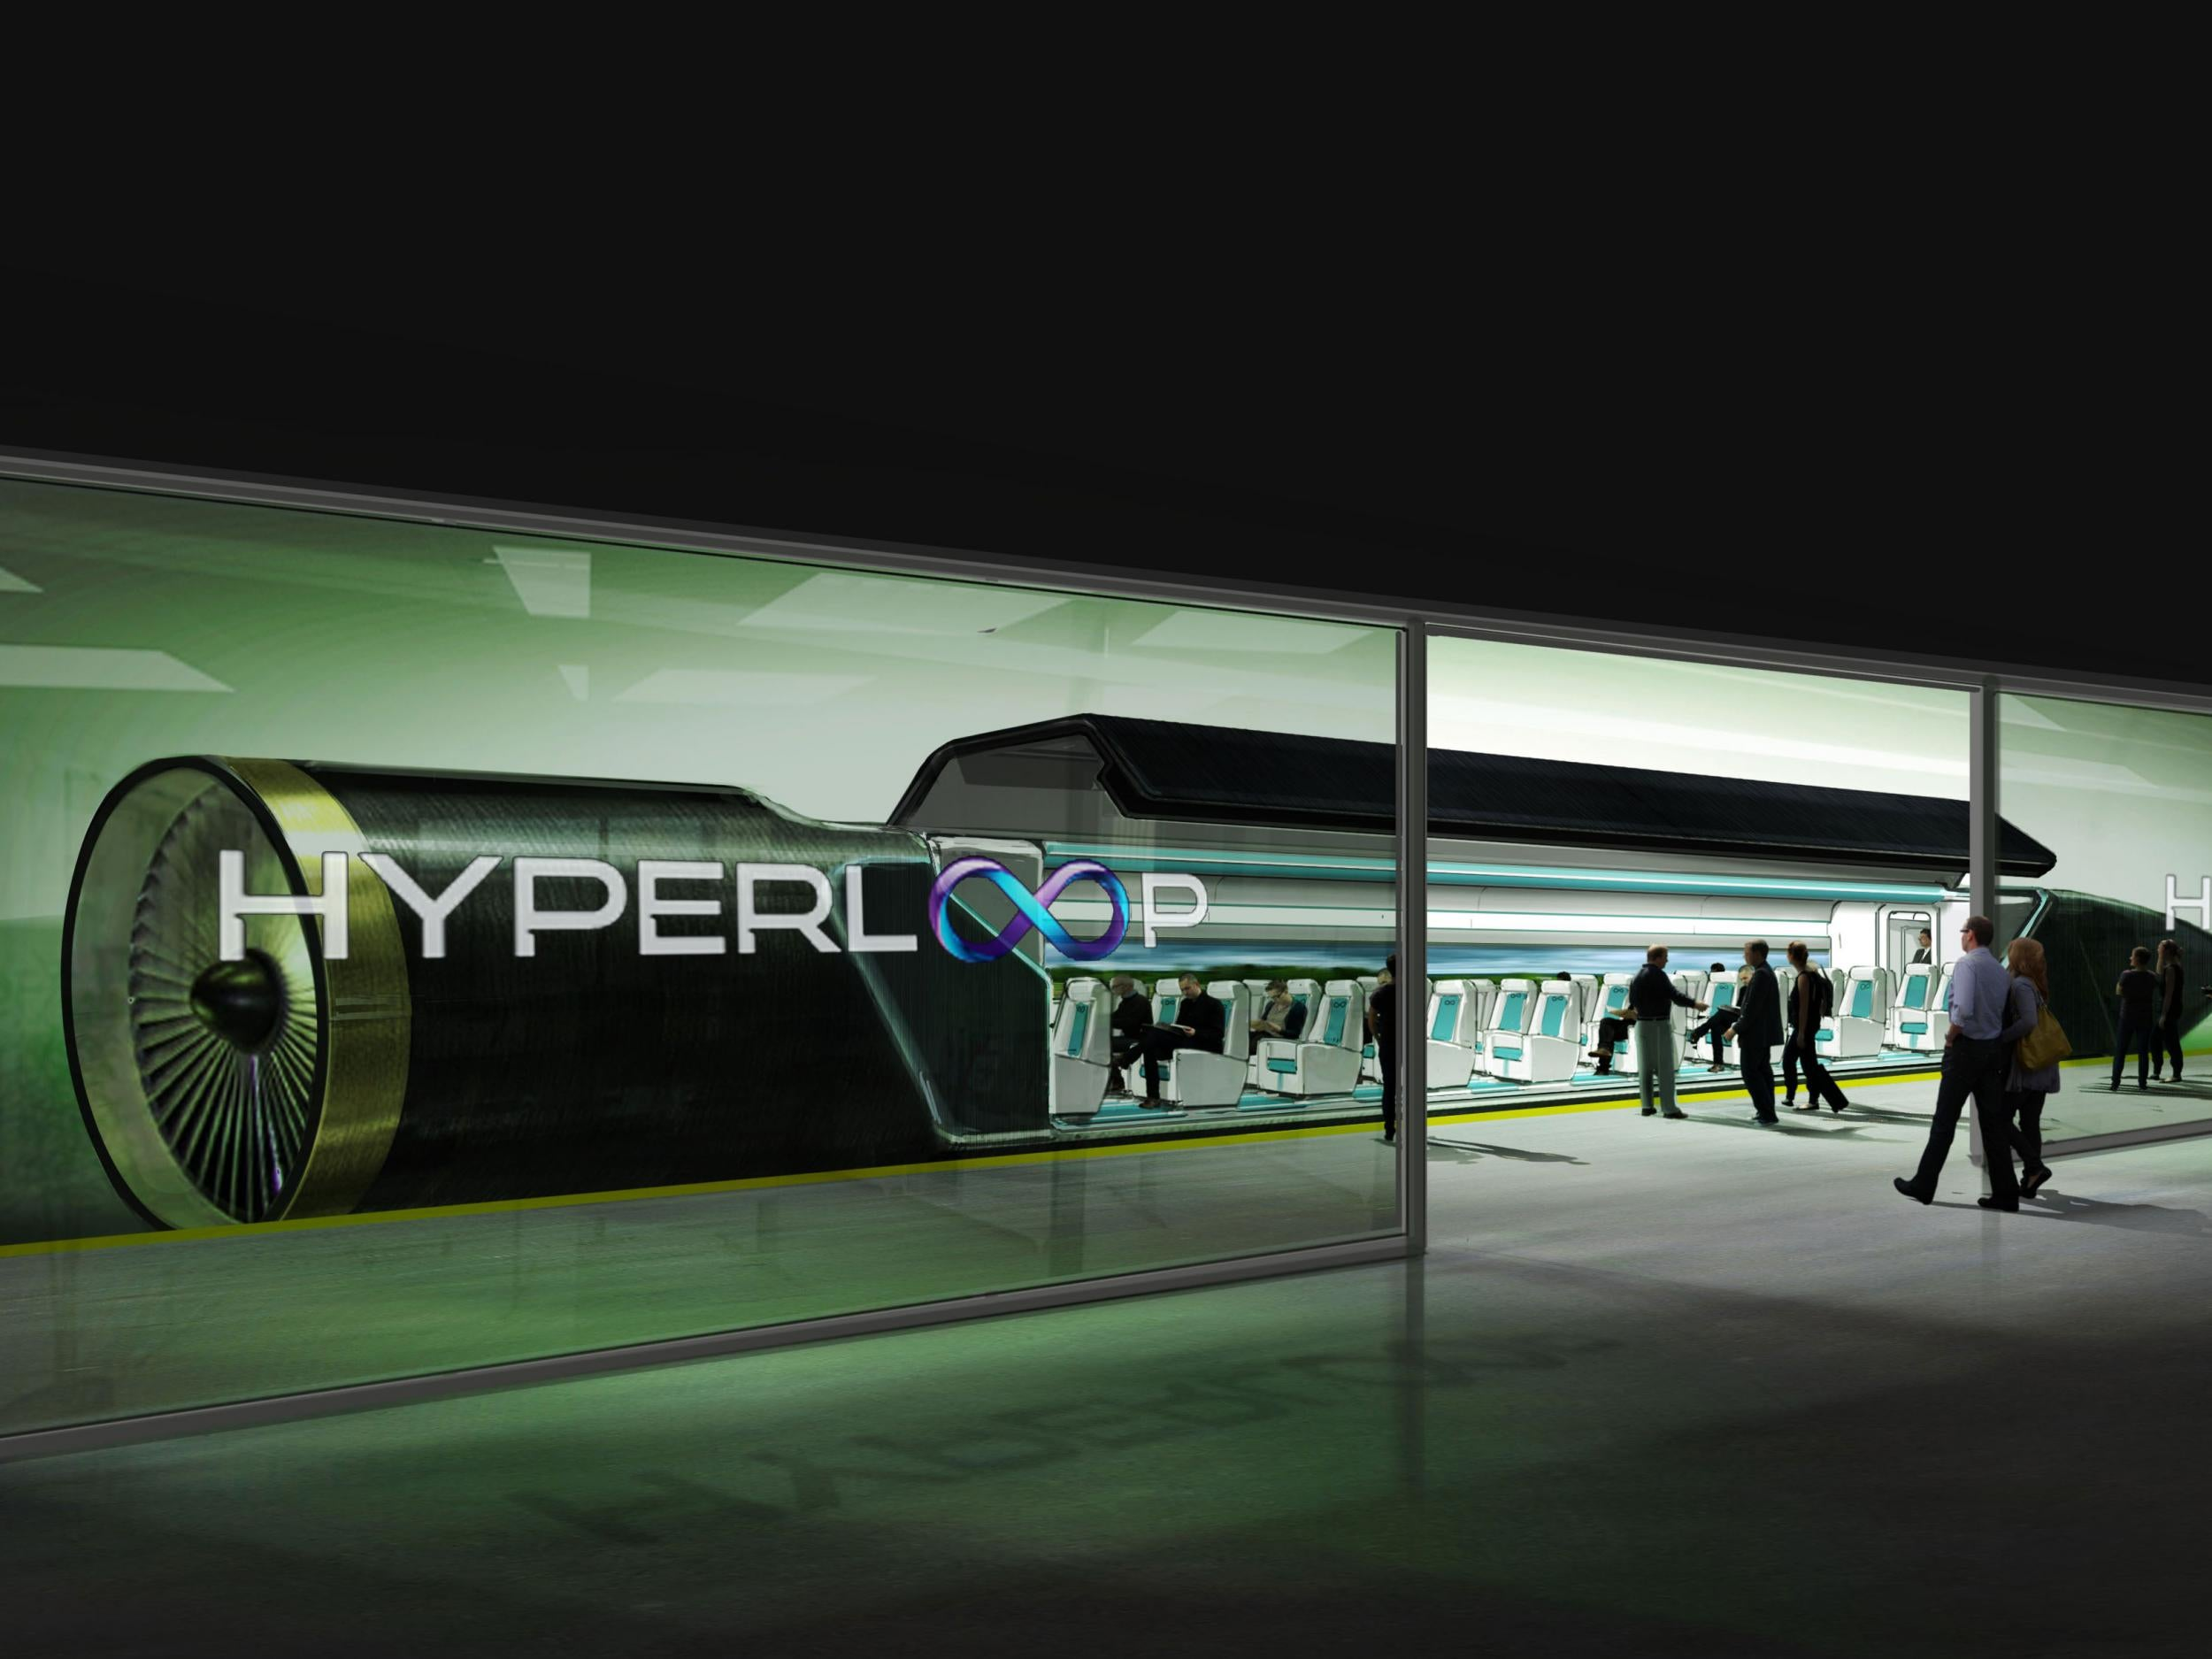 French railways invest in 700mph inter city hyperloop super tube train which could make hs2 obsolete the independent